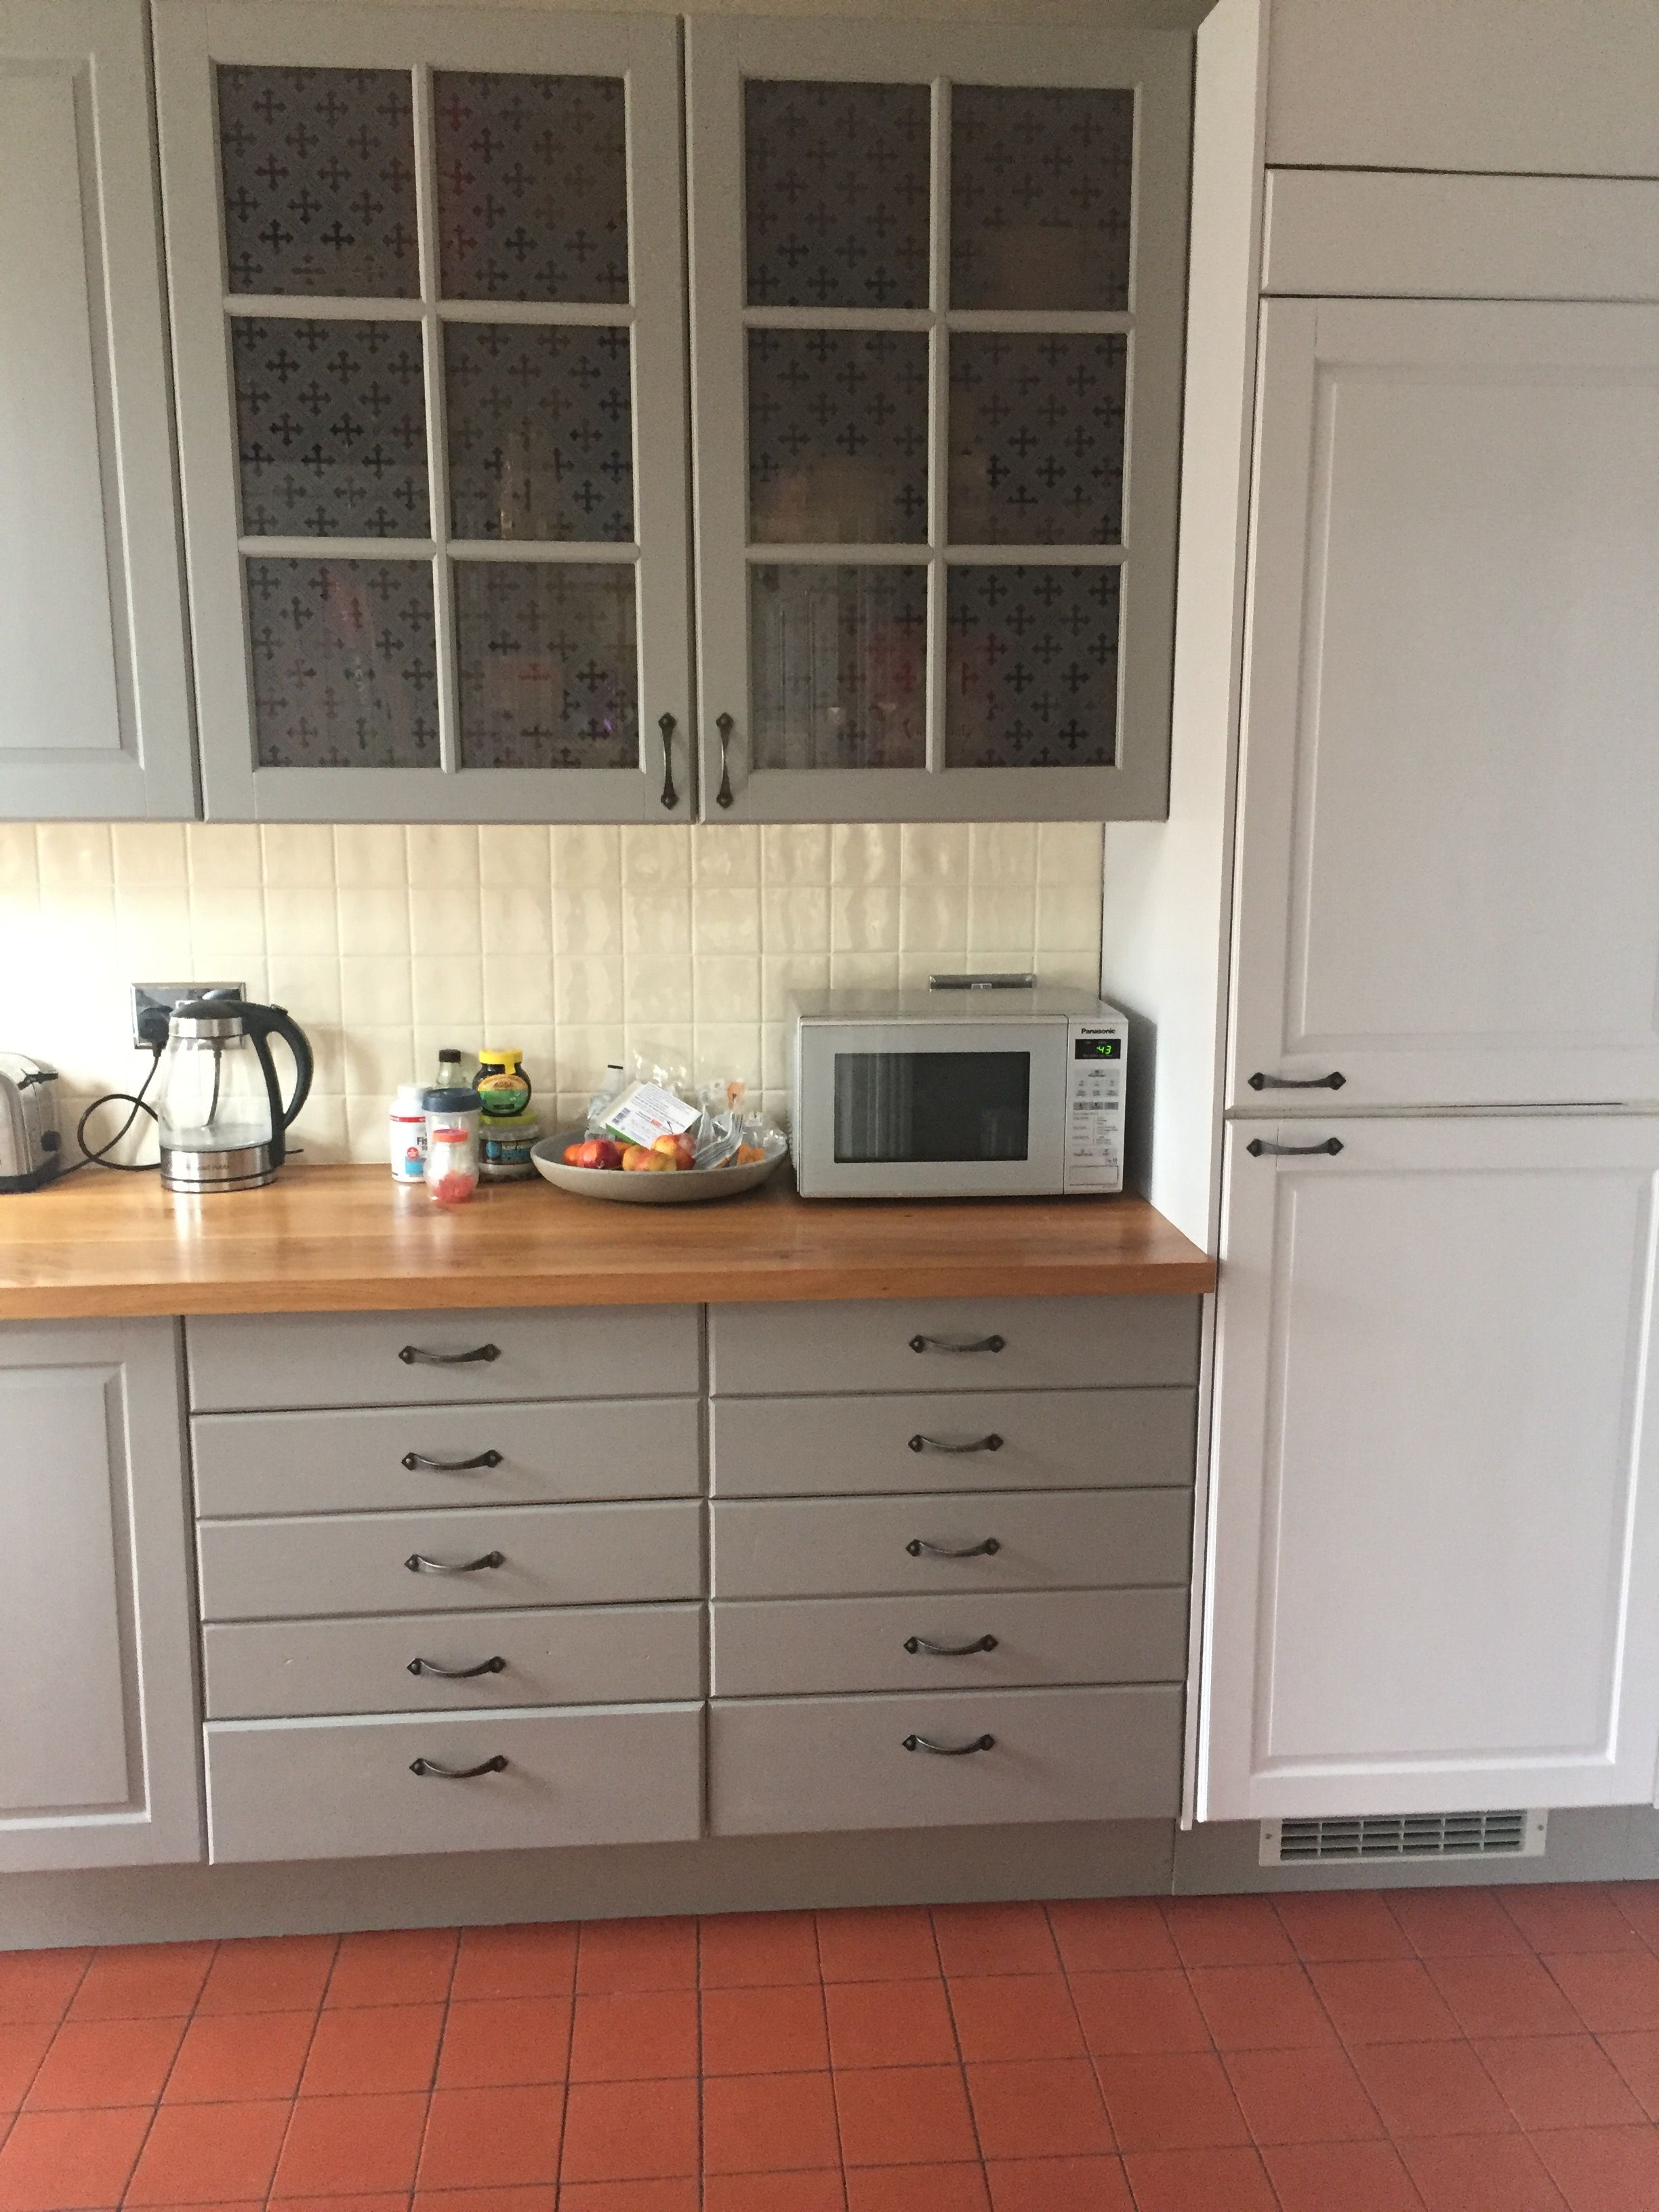 Cupboards Kitchen Farrow And Ball Worsted And Dimpse Ikea Cupboards КУХНЯ In